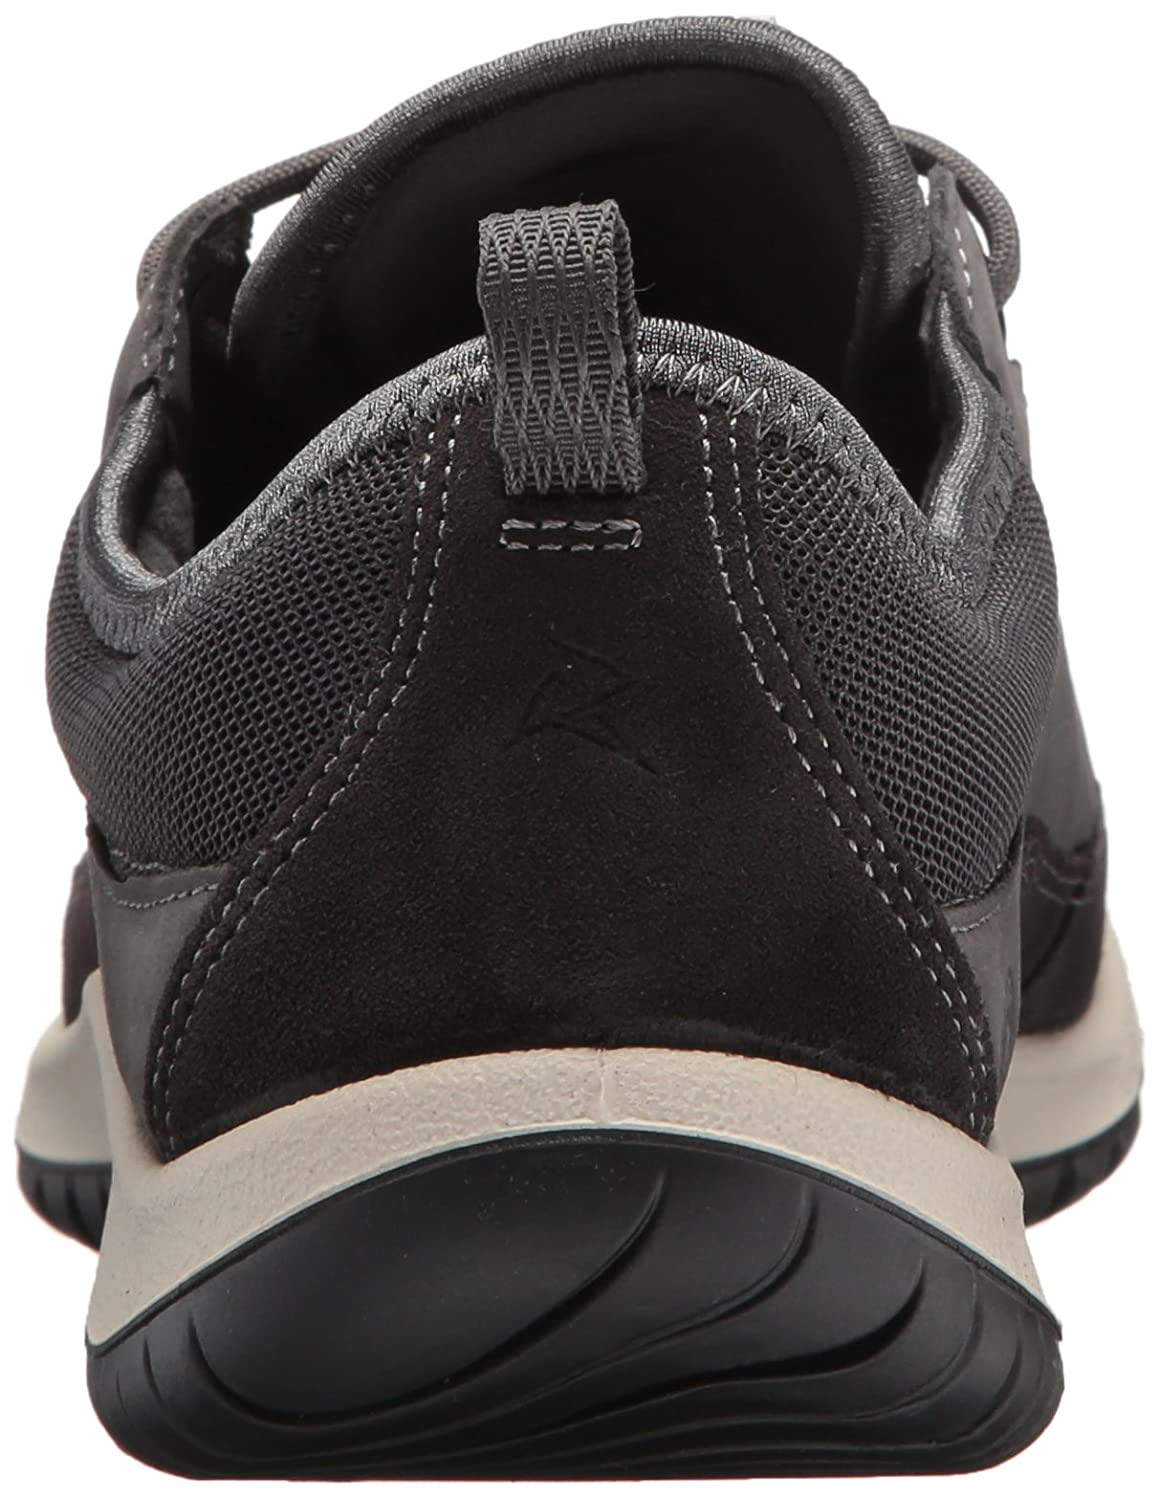 ECCO Women's Aspina Low Hiking Shoe B071VBRRWK 39 EU/8-8.5 M US|Moonless/Dark Shadow